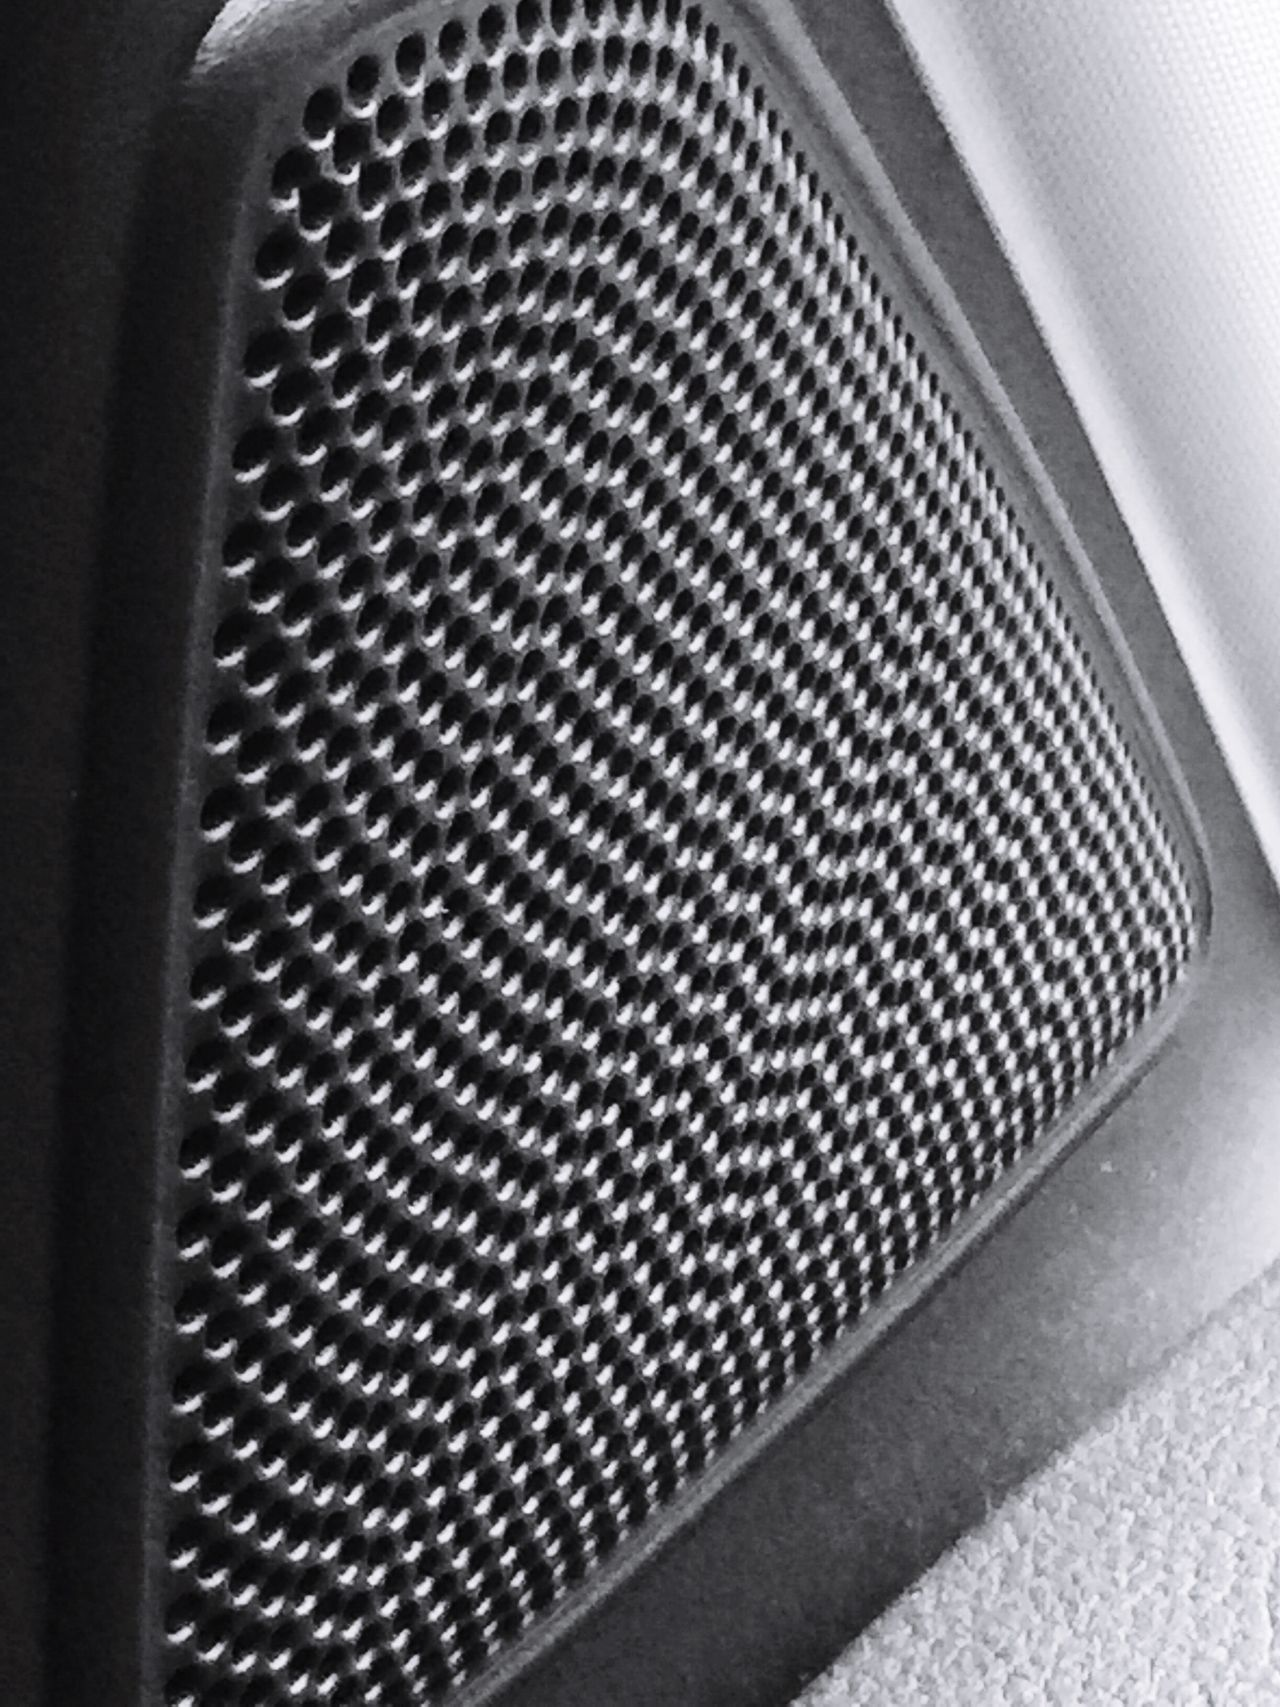 Indoors  Metal No People Close-up Car Interior Speaker Grill Vehicle Vehicle Part Blackandwhite Photography Perforations Grooves Patterns & Textures EyeEmNewHere